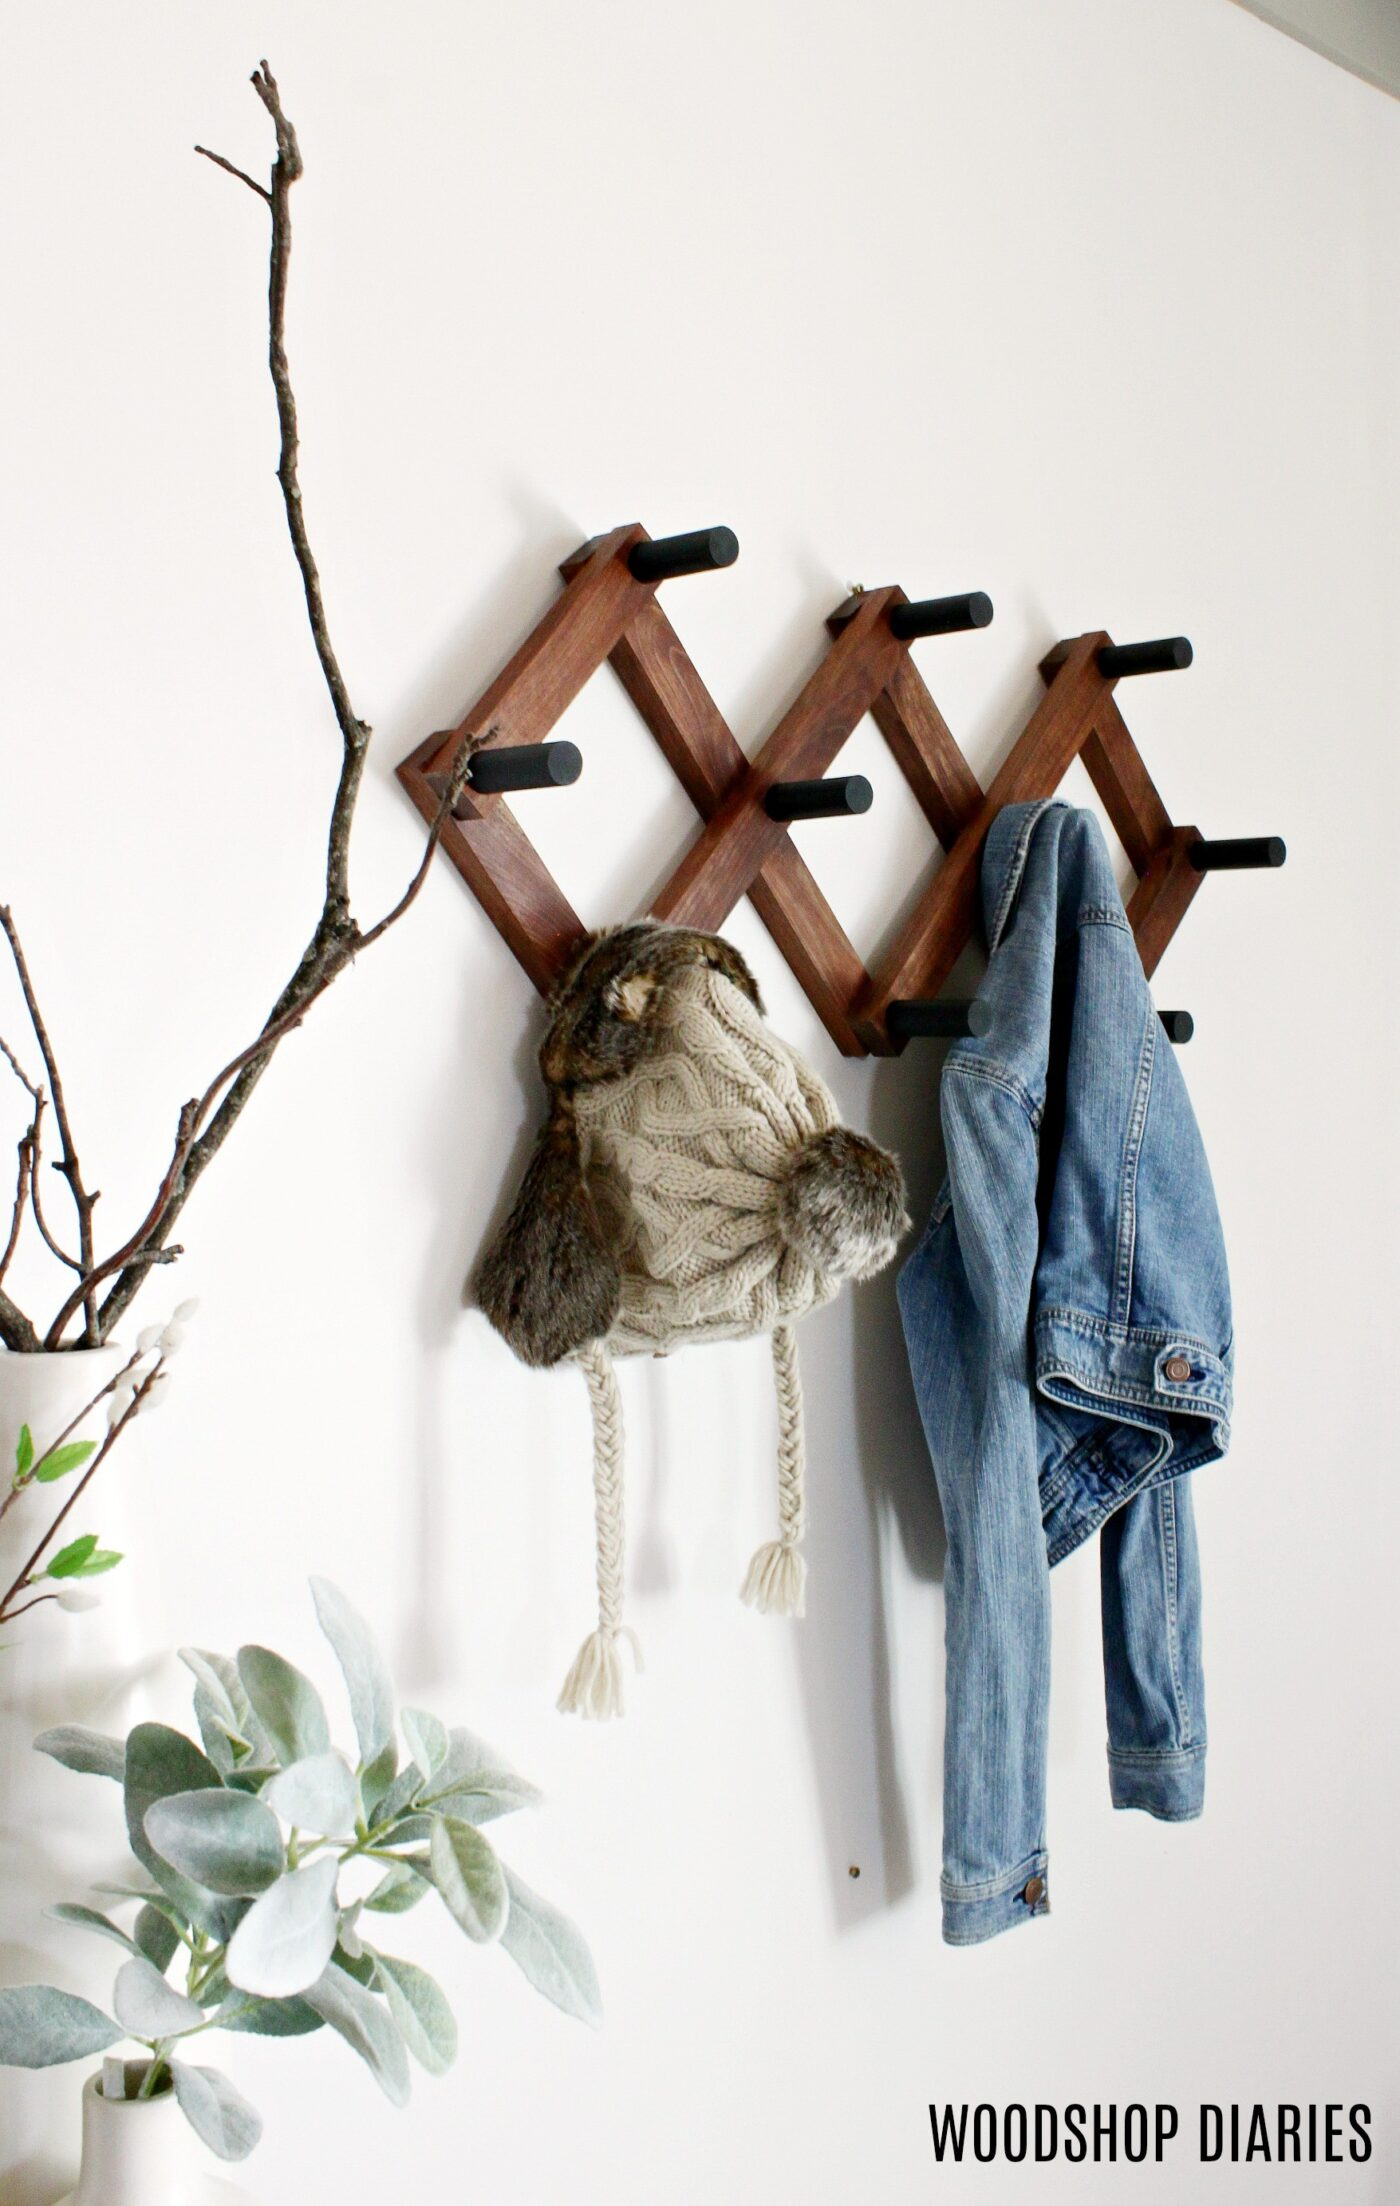 DIY Accordion Coat Hanger for Winter Coats and Hats